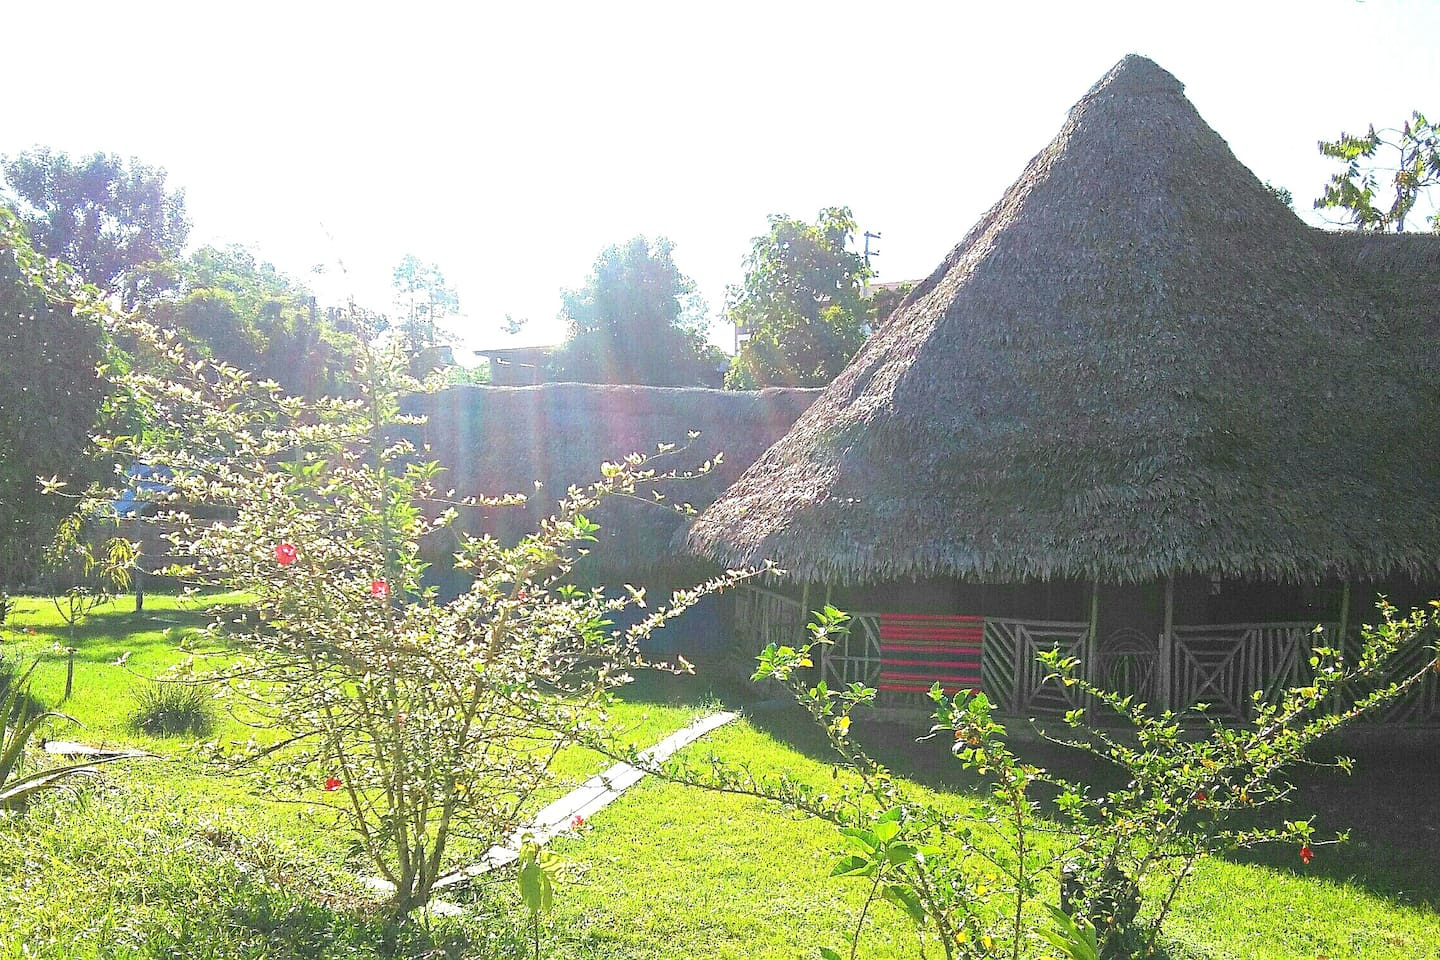 This is the Maloca, an 8-sided building and traditional meeting house, the home of Claire since 2007